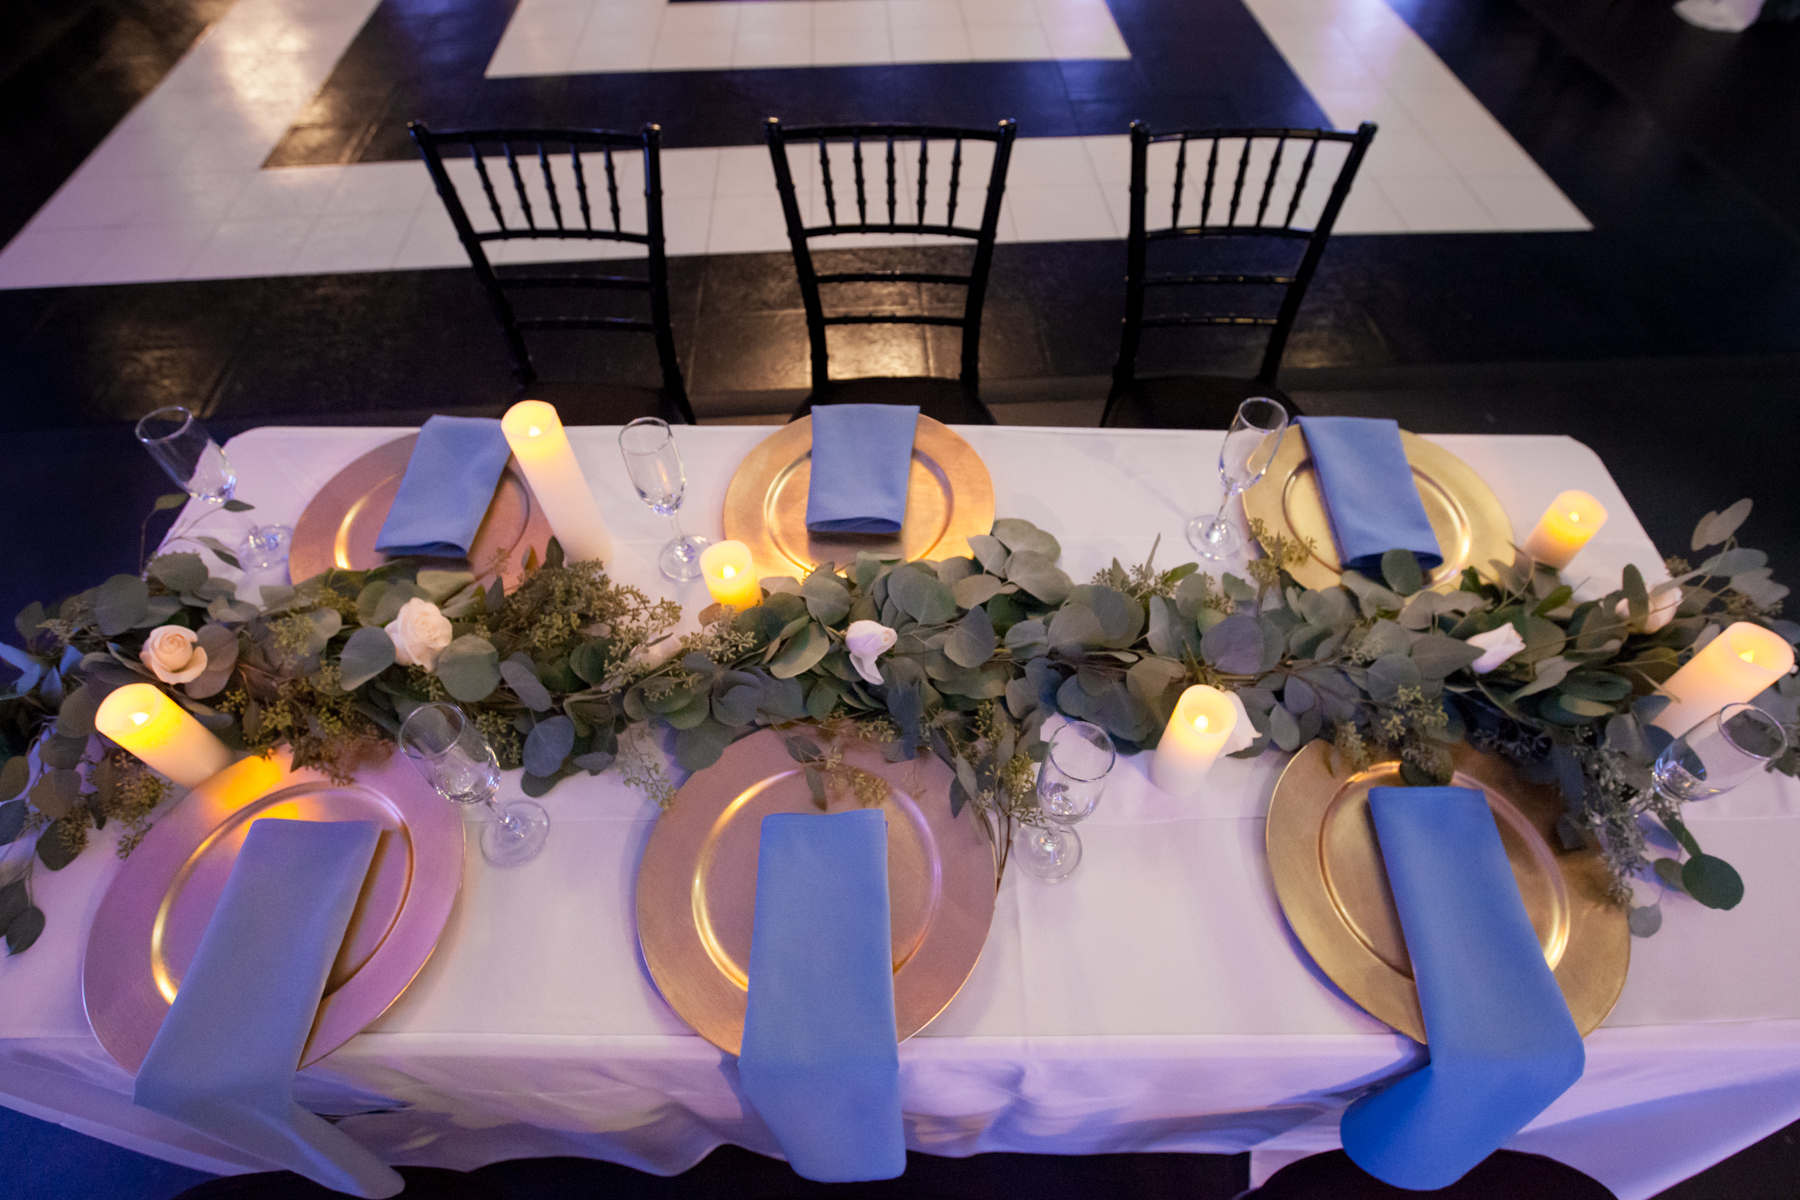 Gold Chargers - Decorative gold charger plates for reception tables$1.20/p